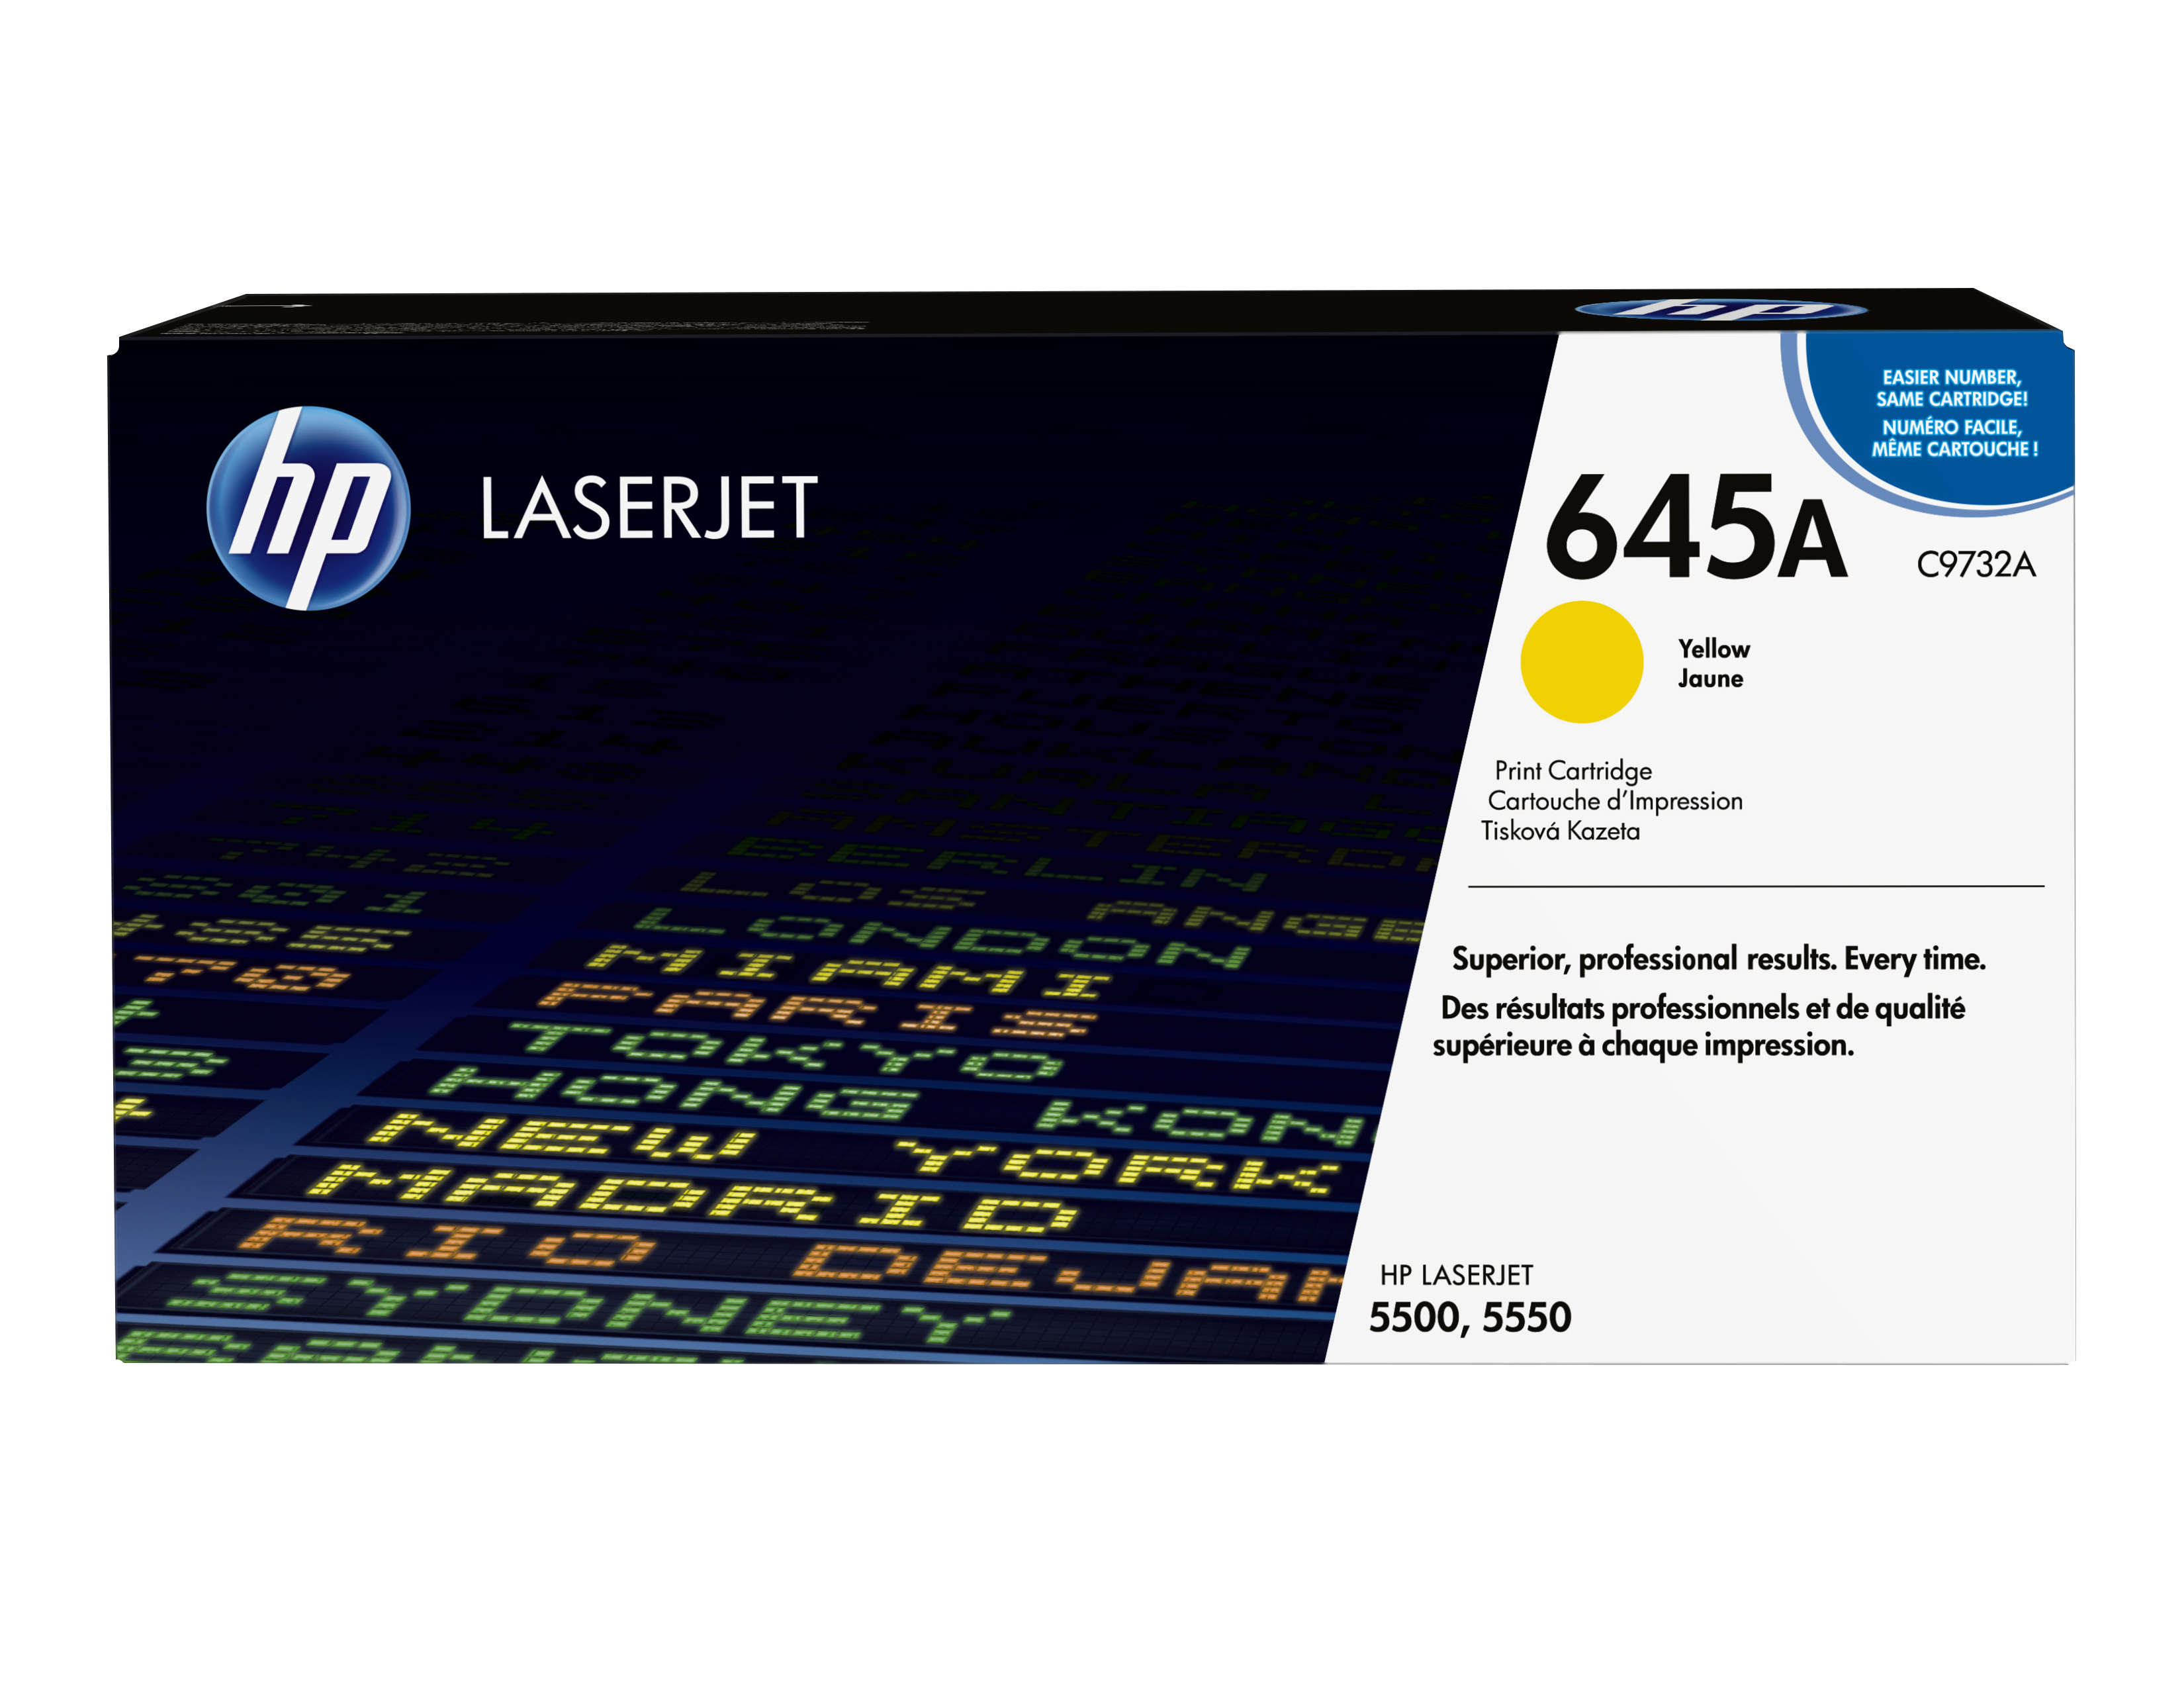 Remanufactured HP C9732A Toner Cartridge Yellow 12K C9732A - rem01